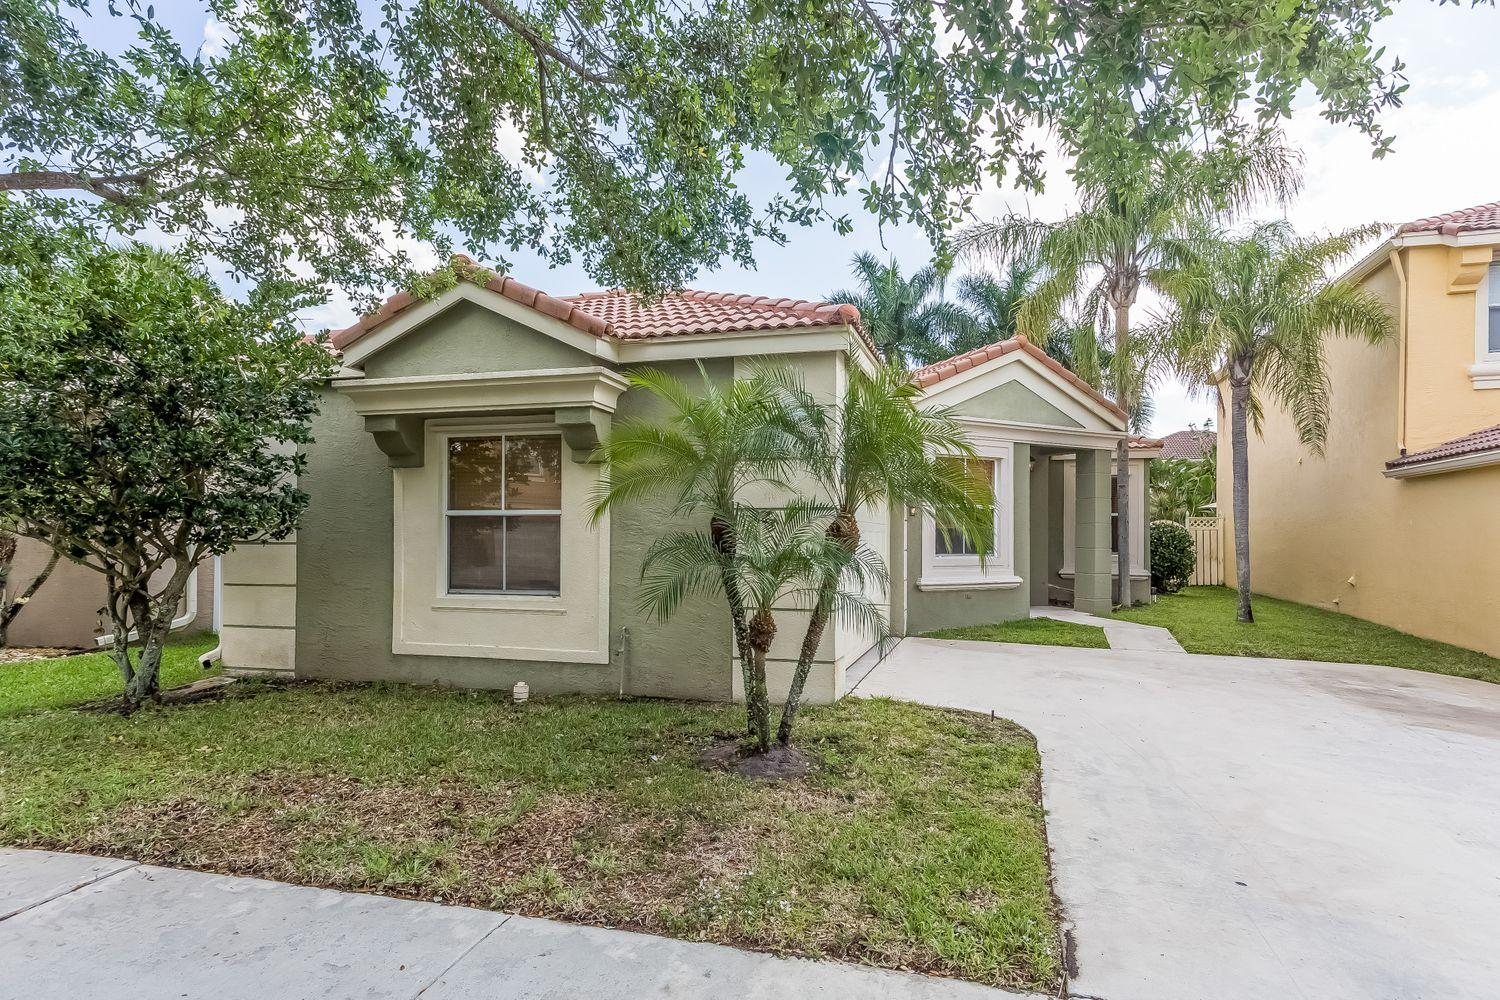 6119 Oak Bluff Way, Lake Worth, Florida 33467, 4 Bedrooms Bedrooms, ,2 BathroomsBathrooms,Single family detached,For sale,Oak Bluff,RX-10523807